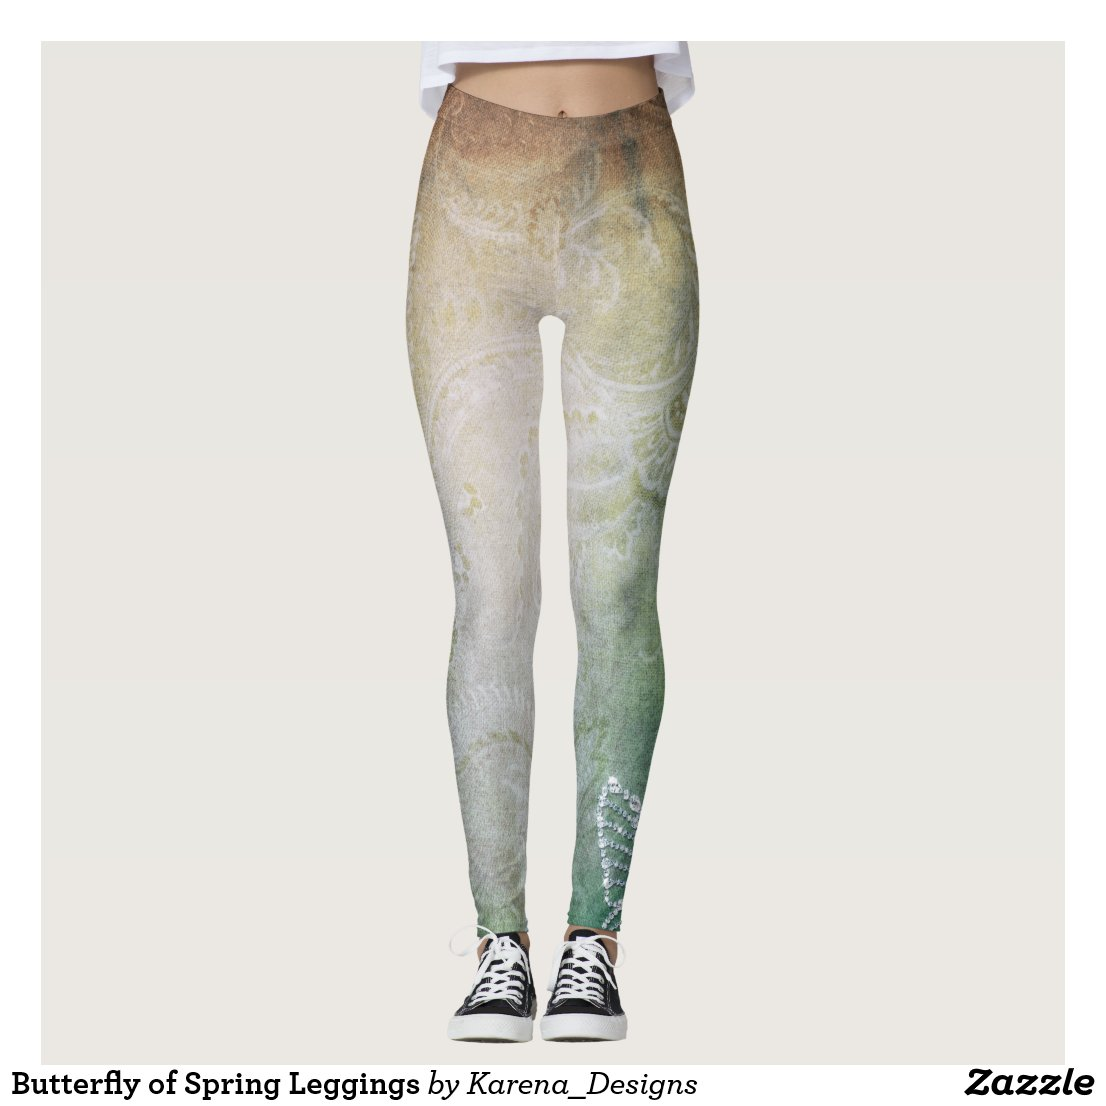 Butterfly of Spring Leggings